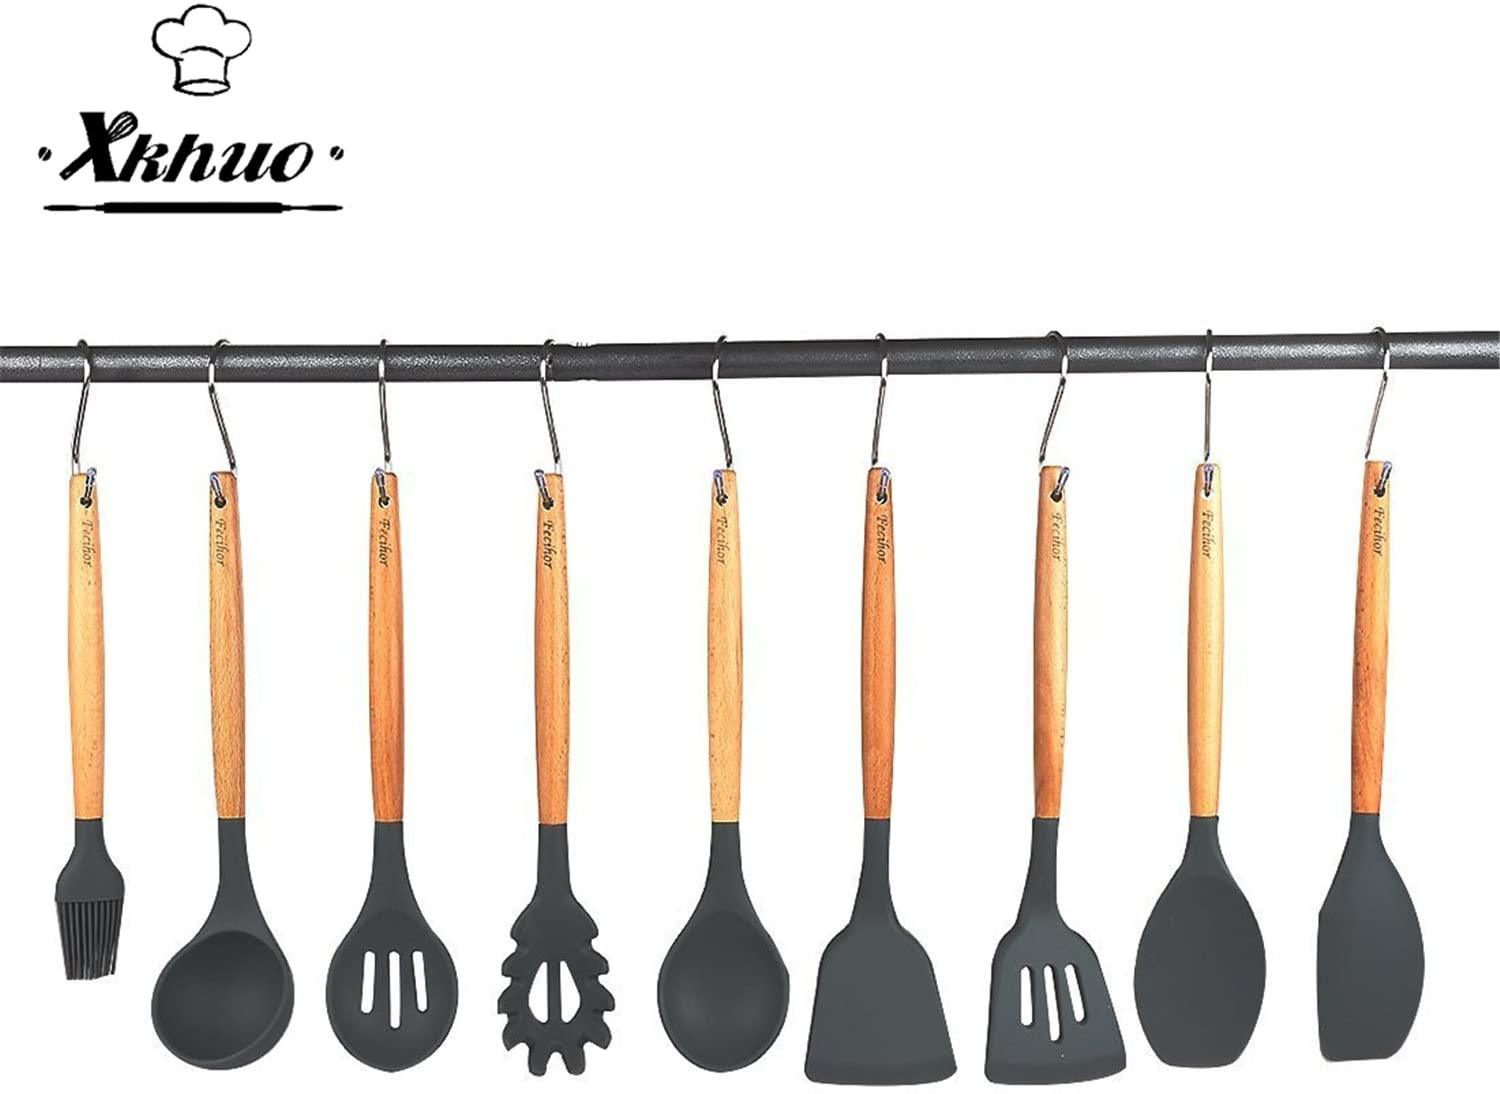 XKHUO 9pcs/set Multi-Purpose Wooden Handle Silicone Kitchenware Baking Tools Kitchen Accessories